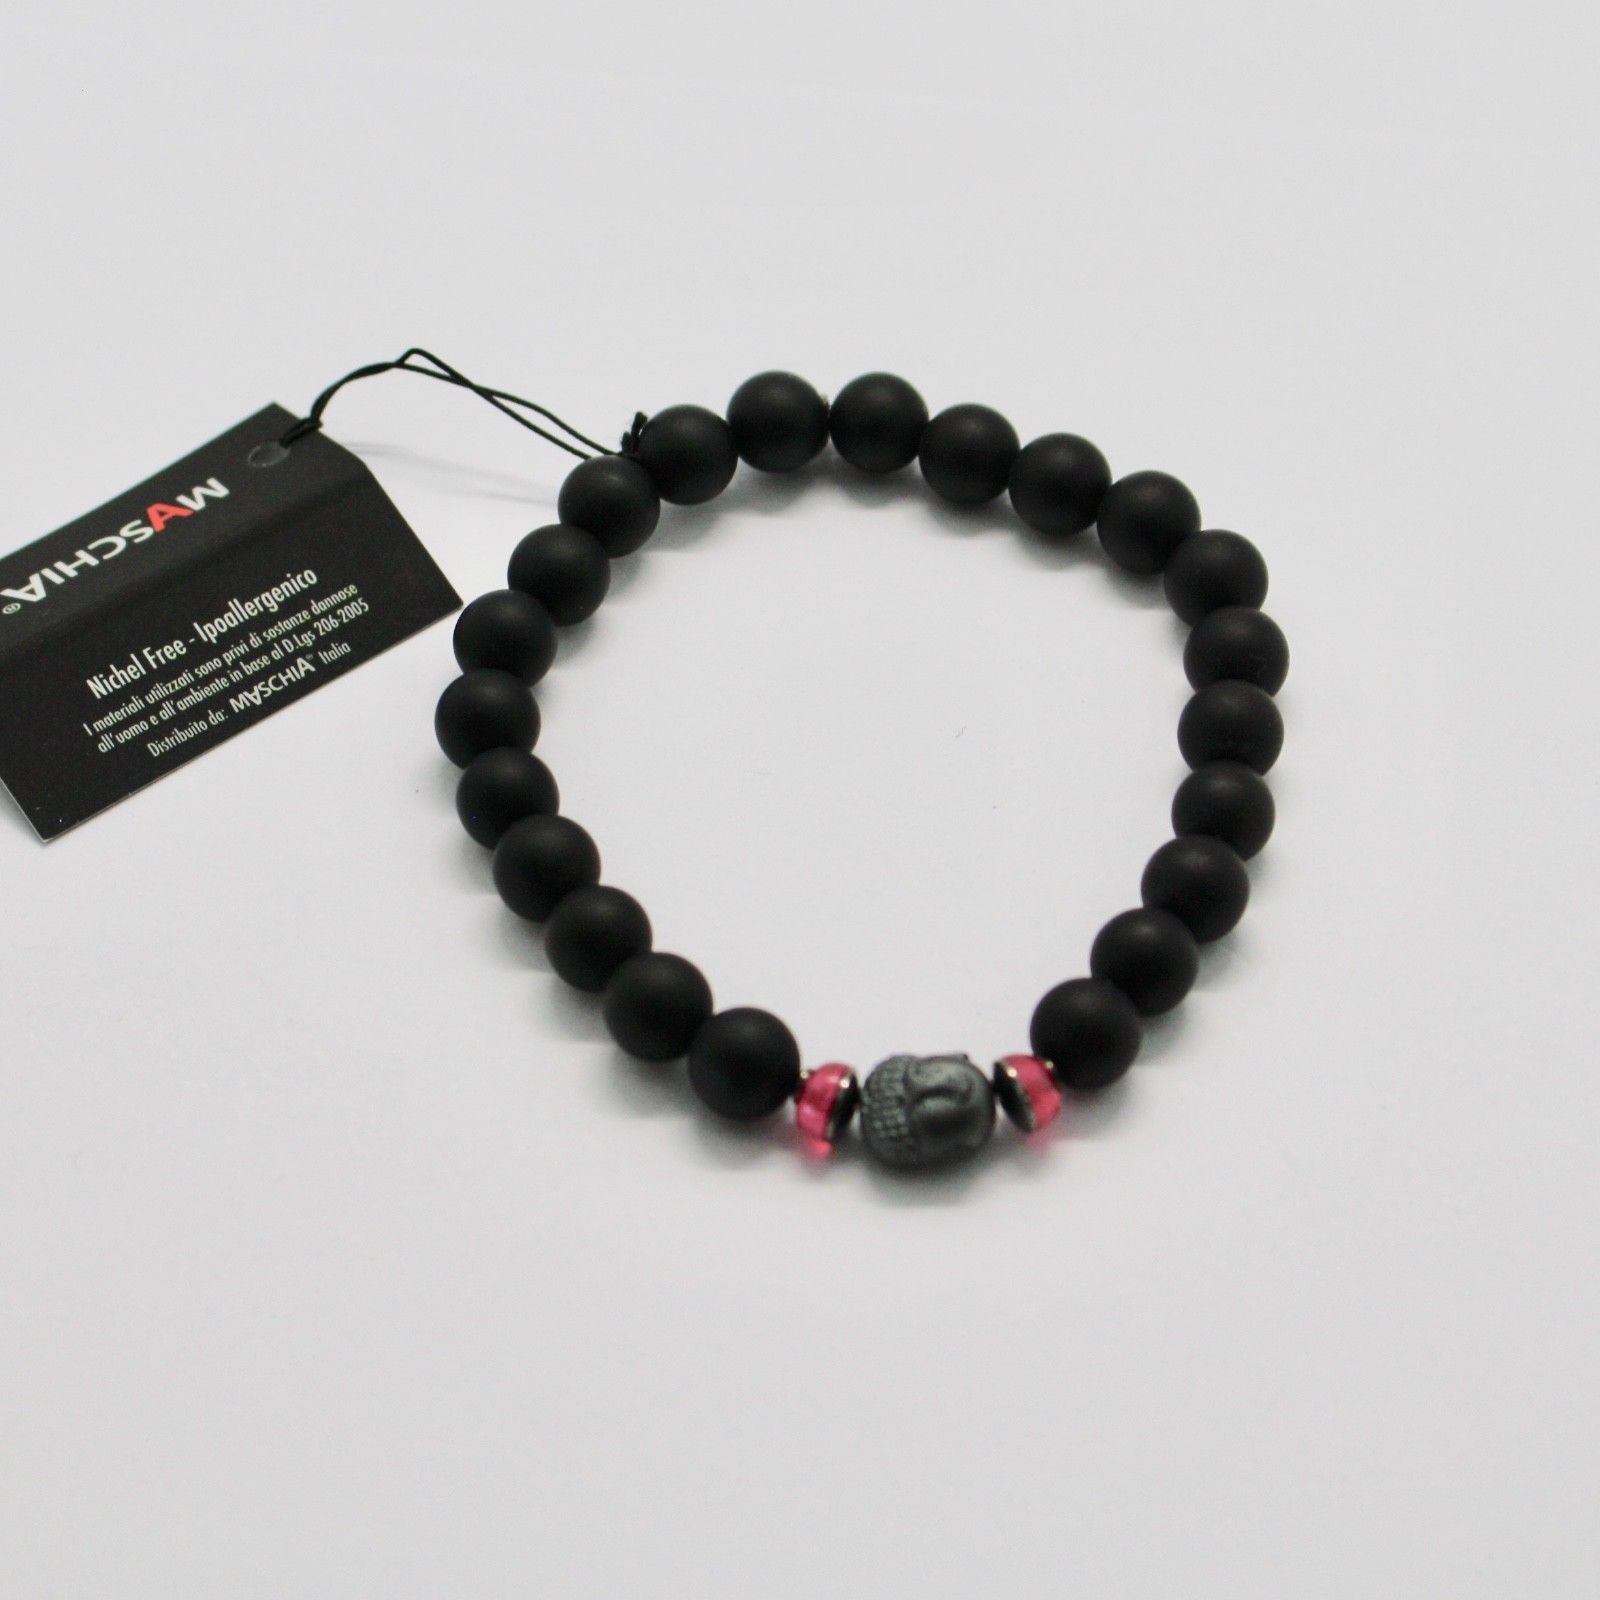 BRACCIALE IN ARGENTO 925 CON EMATITE E ONICE BPR-4 MADE IN ITALY BY MASCHIA image 2